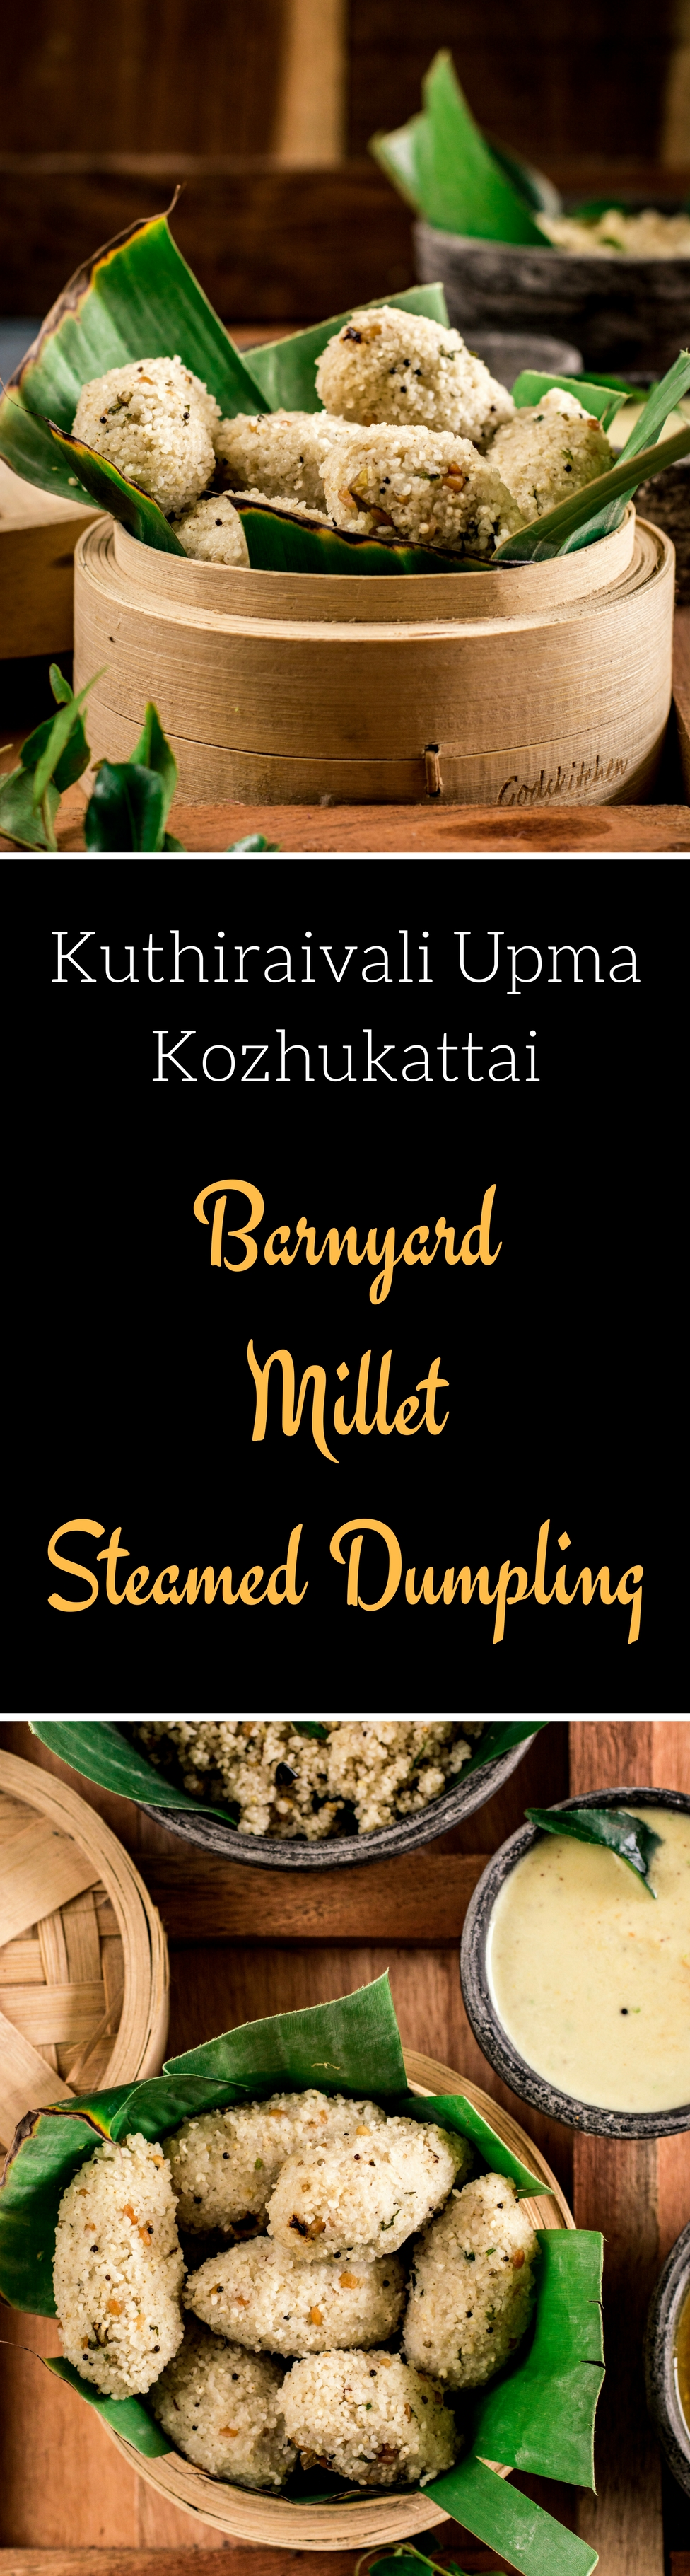 Barnyard Millet Steamed Dumplings